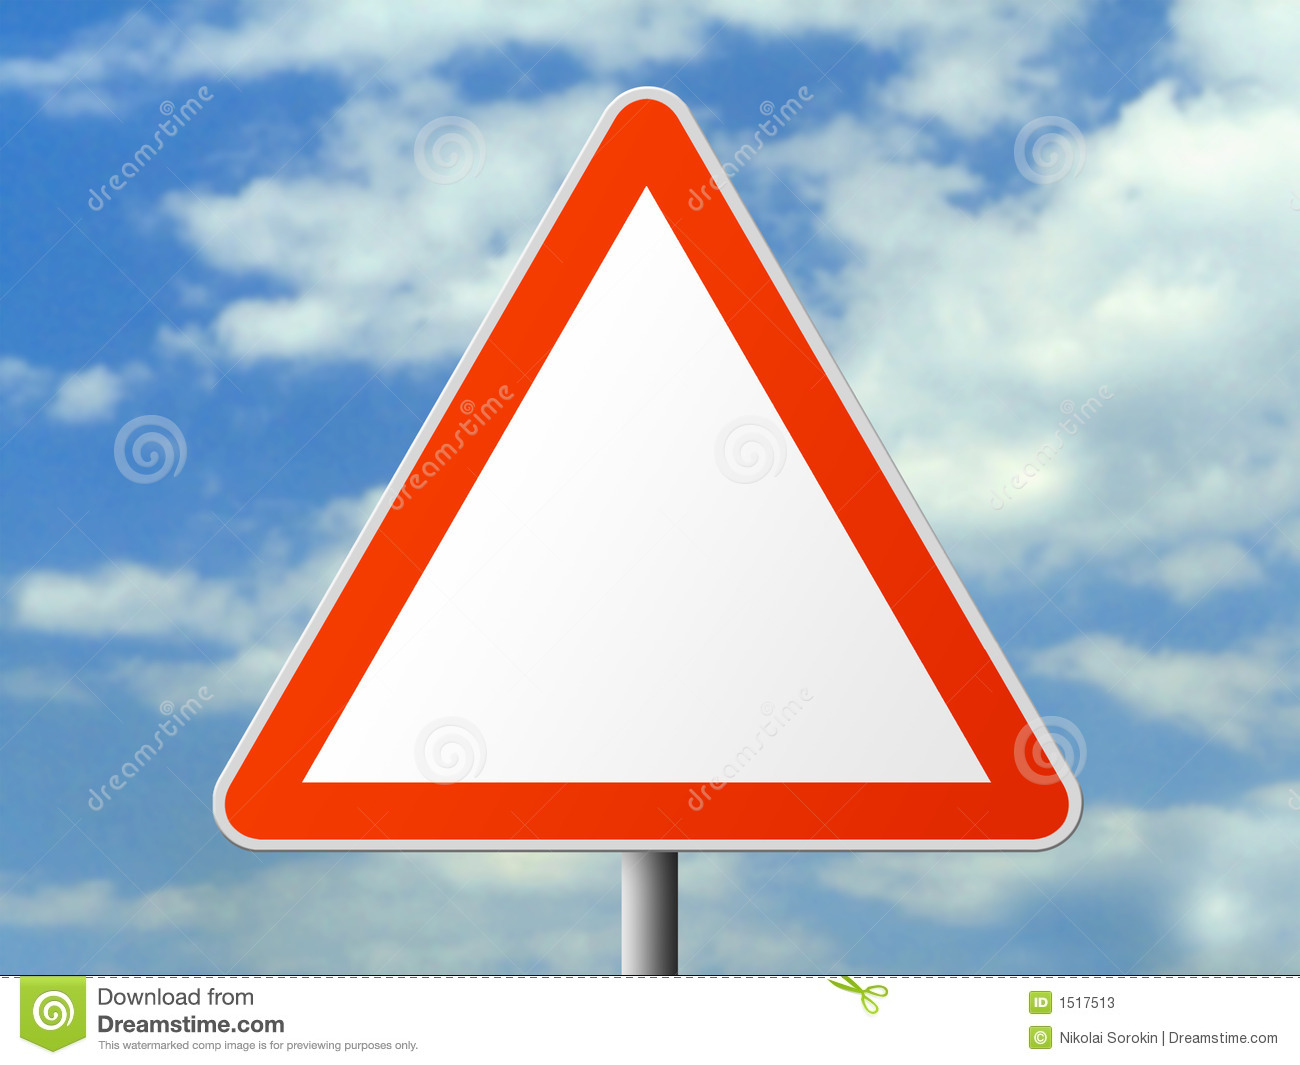 Triangle sign (clear)